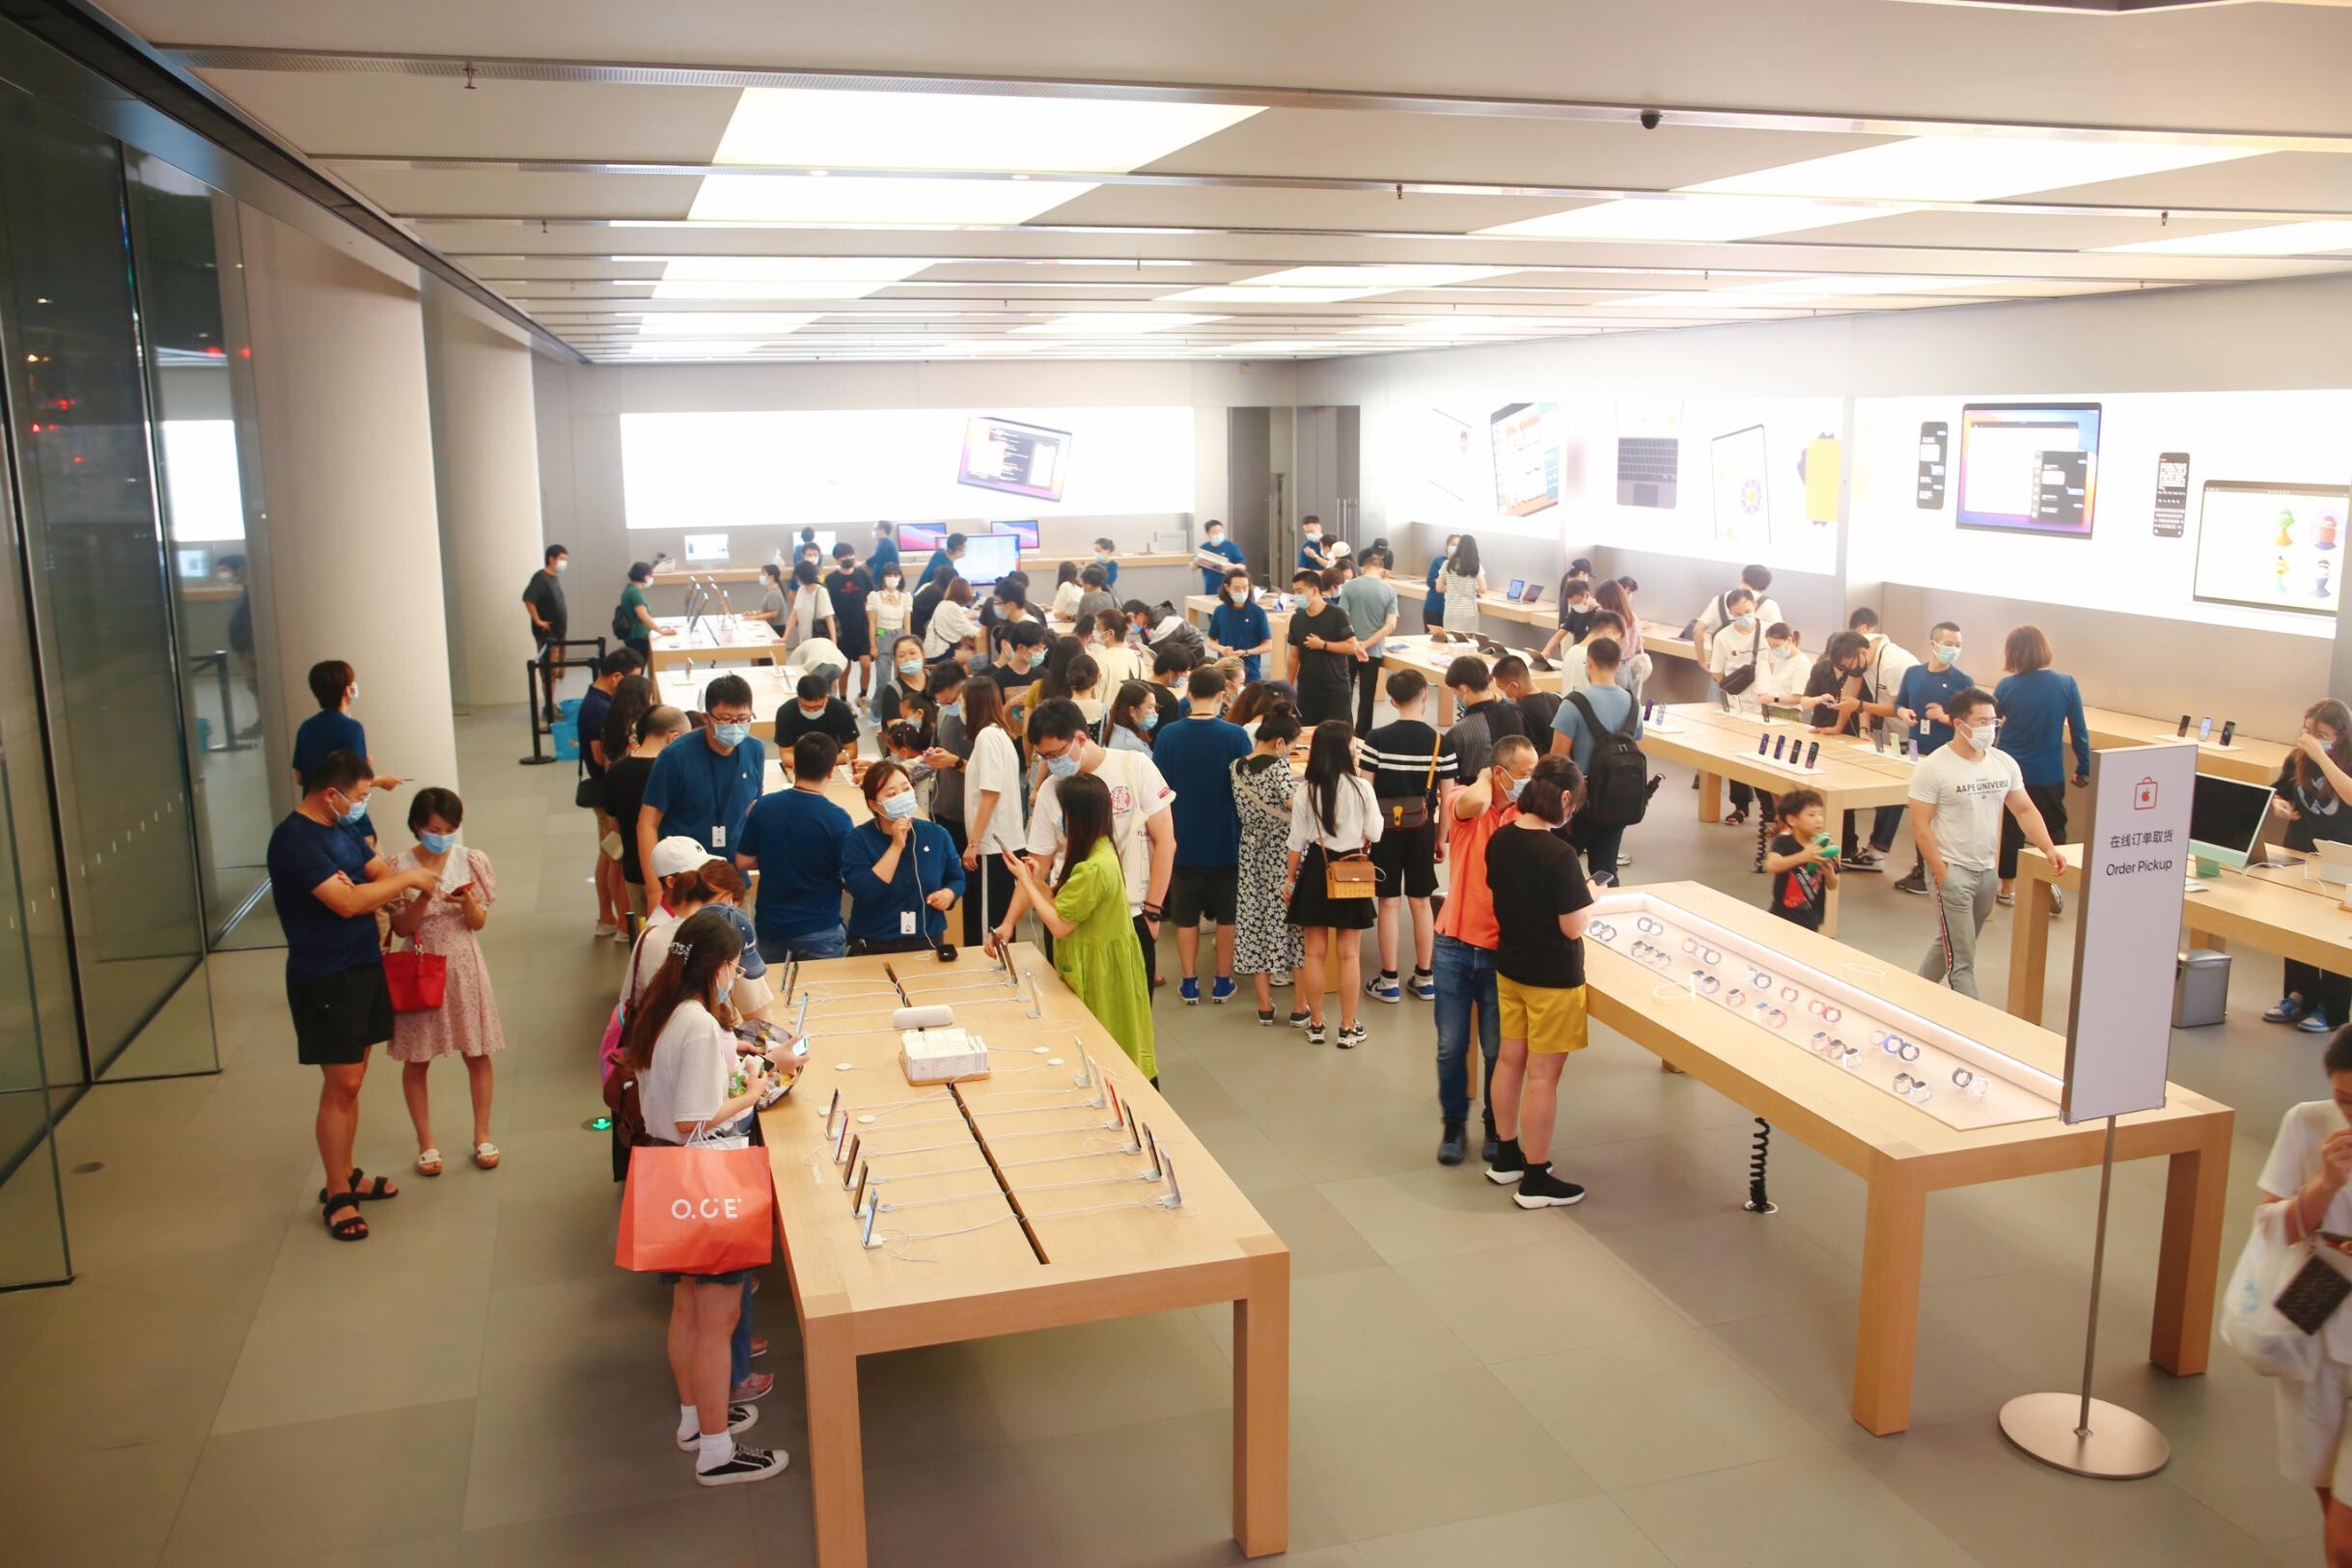 <i>Xing Yun/Costfoto/Barcroft Media/Getty Images</i><br/>Apple officially launched its next-generation iPhone 13 line on Friday.